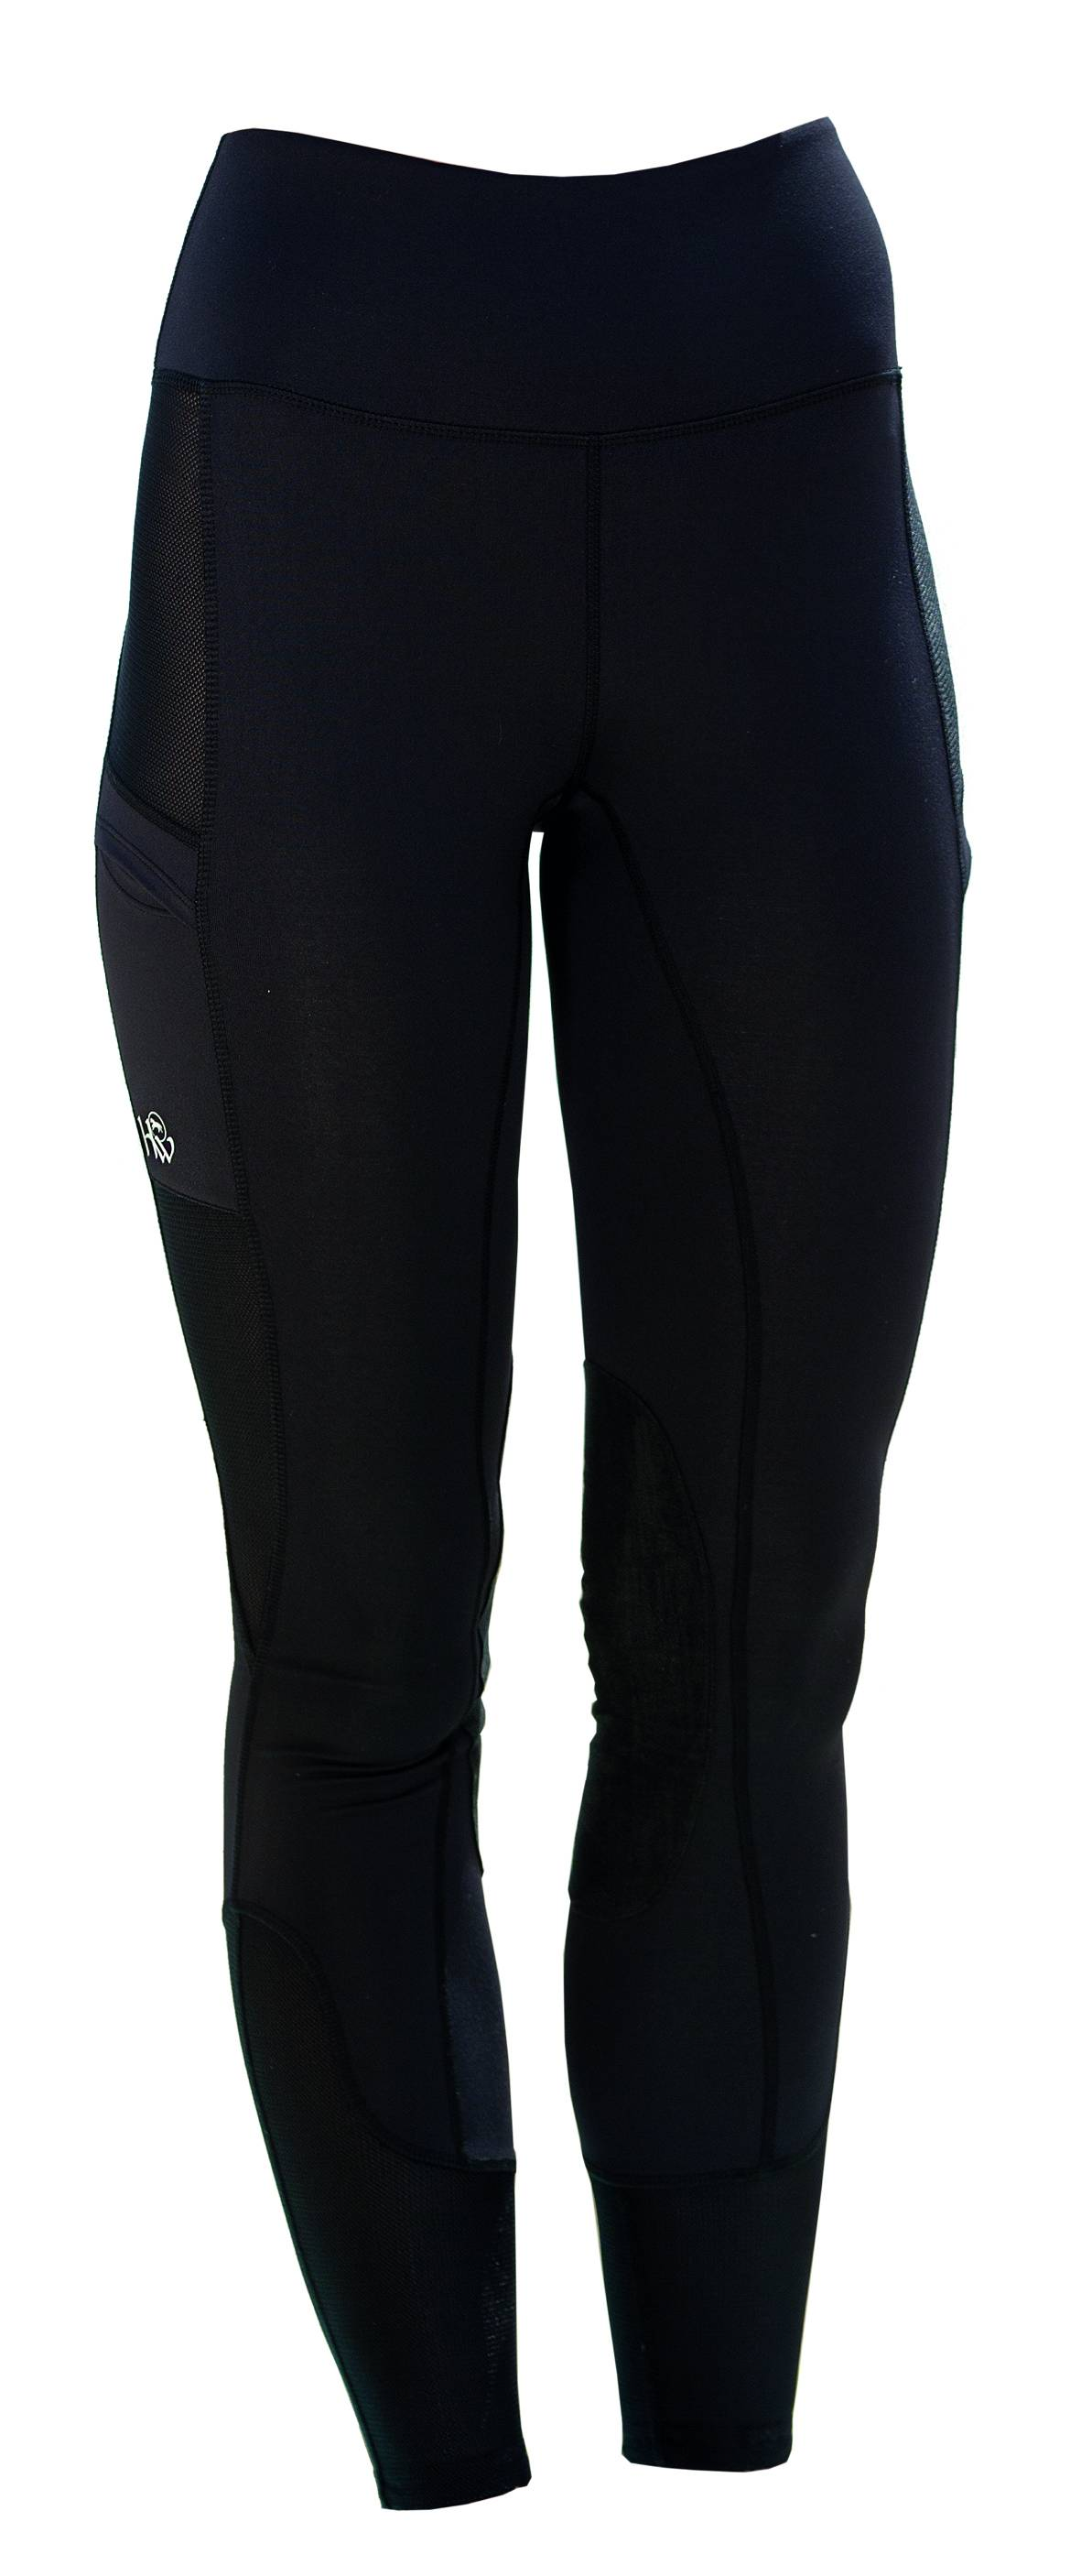 Horseware Riding Tights - Ladies